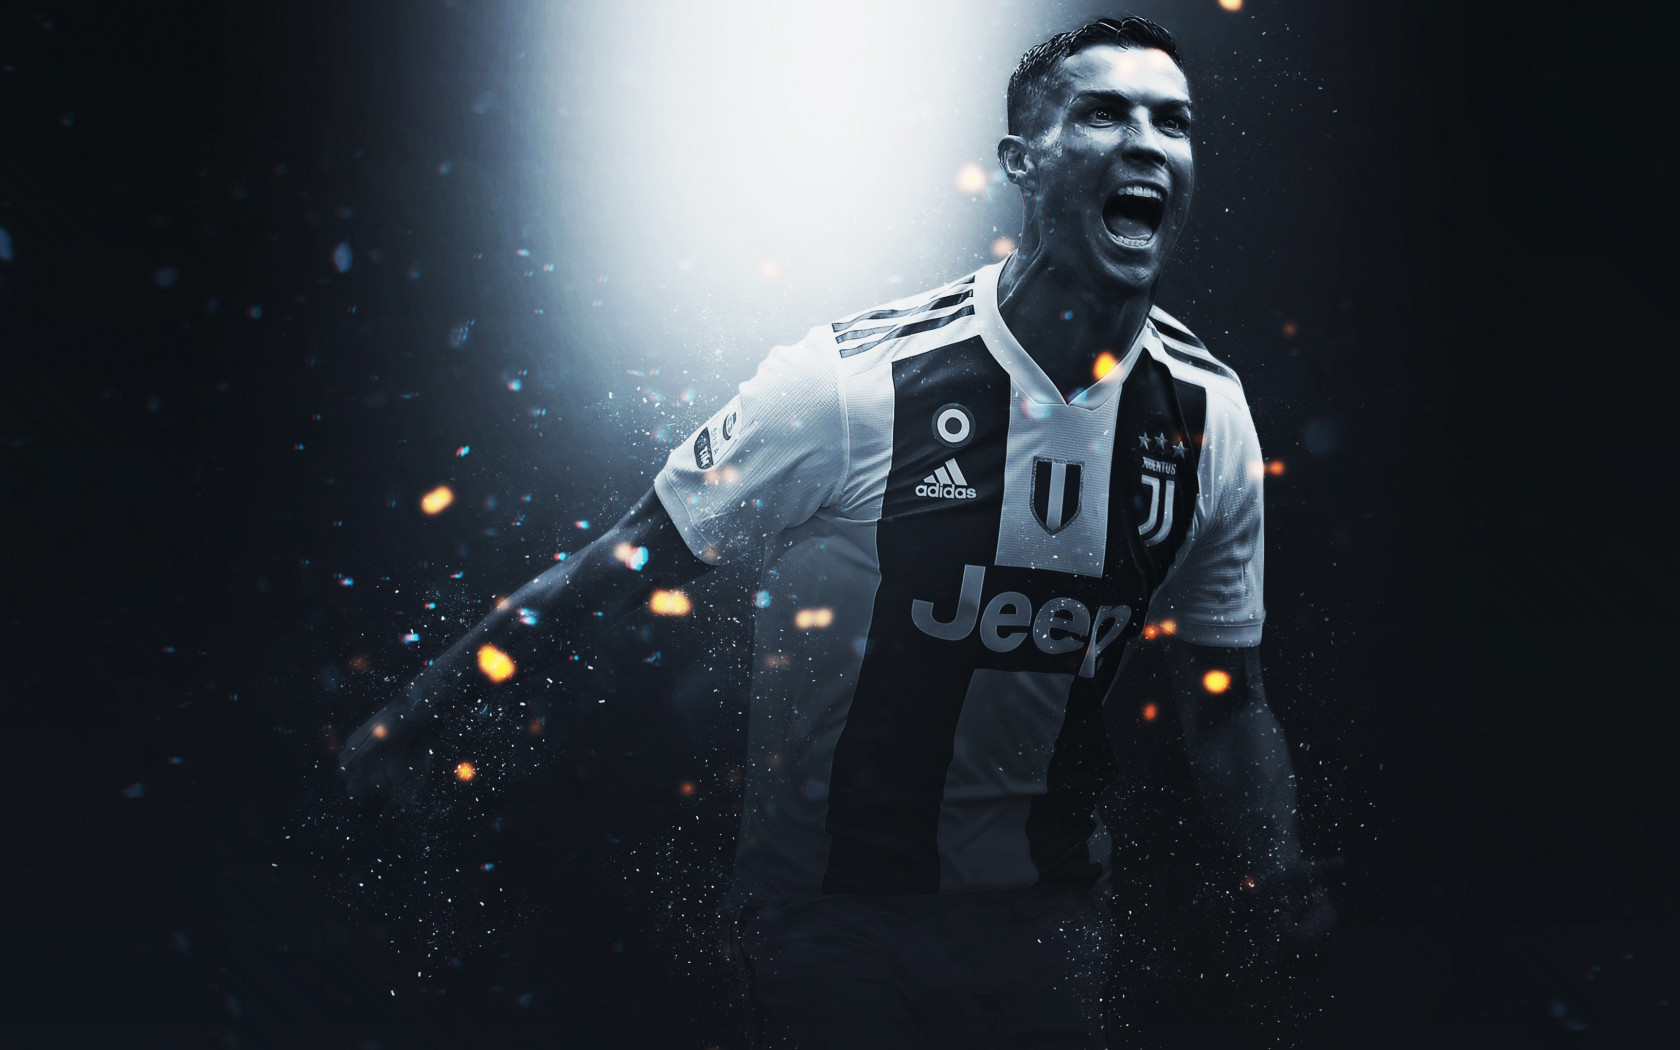 Cristiano Ronaldo at Juventus wallpaper 1680x1050